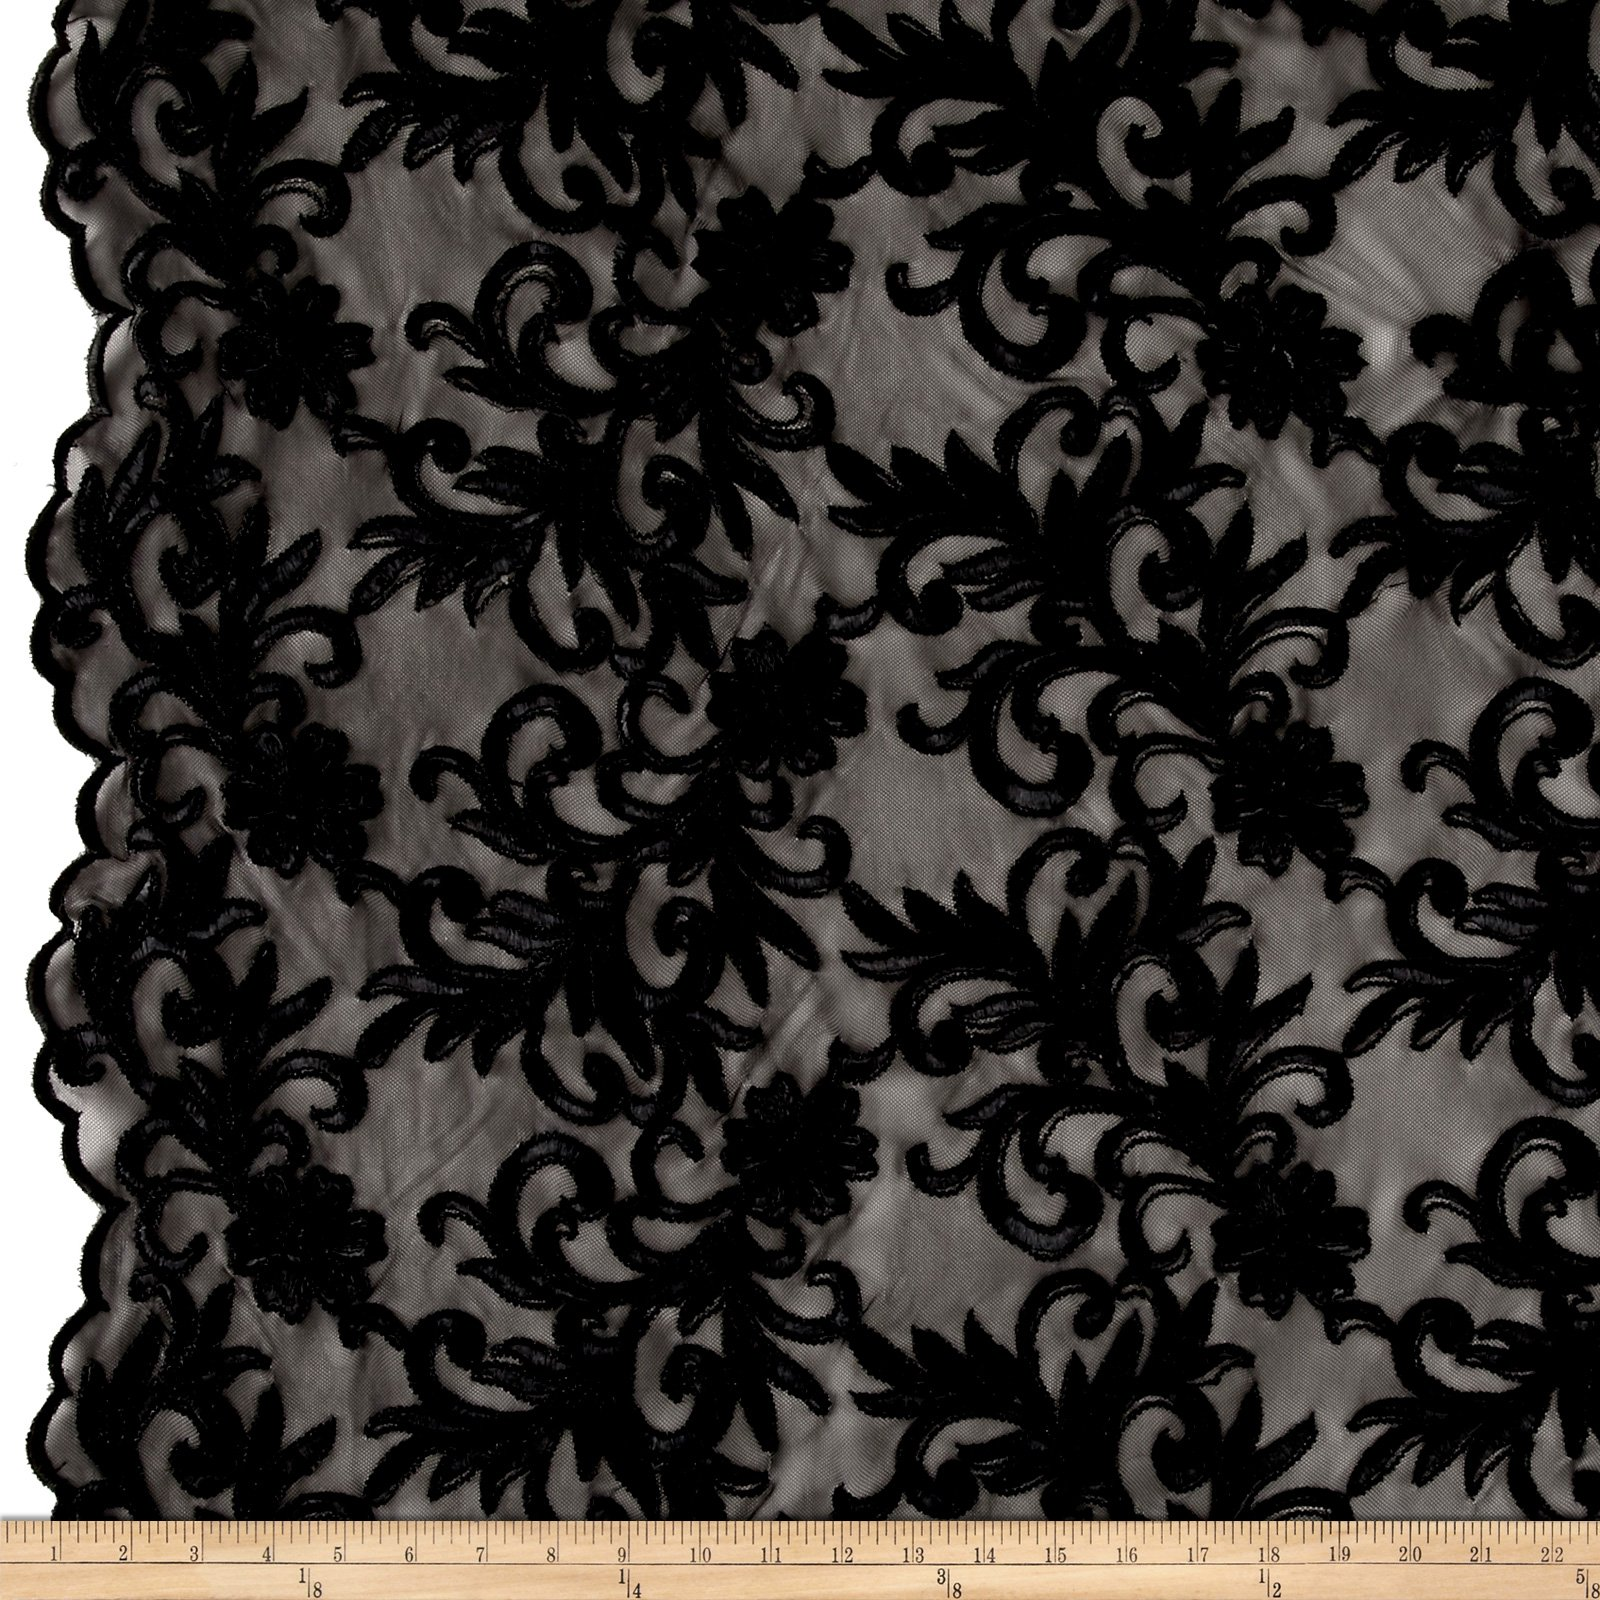 Ben Textiles Inc. Heavyweight Embroidered Mesh Lace Black Fabric By The Yard